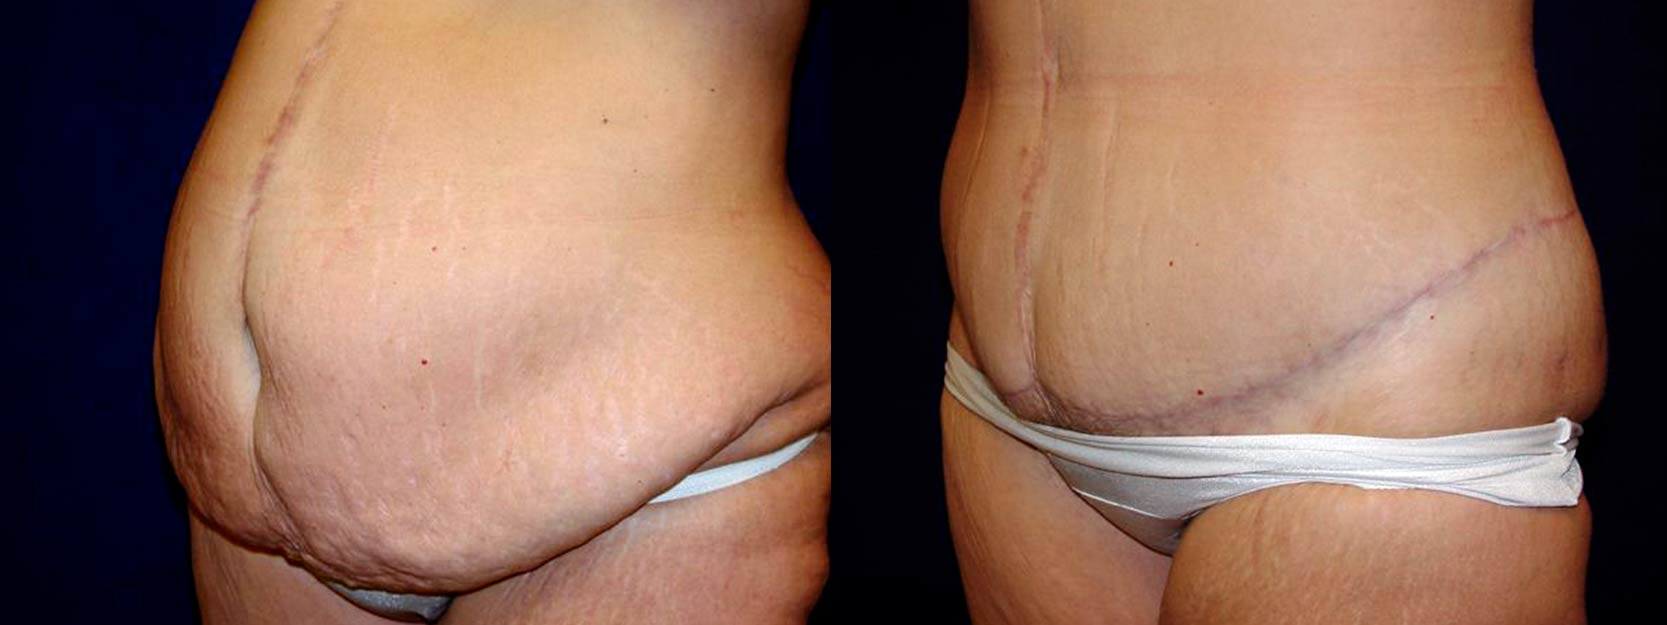 Frontal View - Circumferential Tummy Tuck After Massive Weight Loss